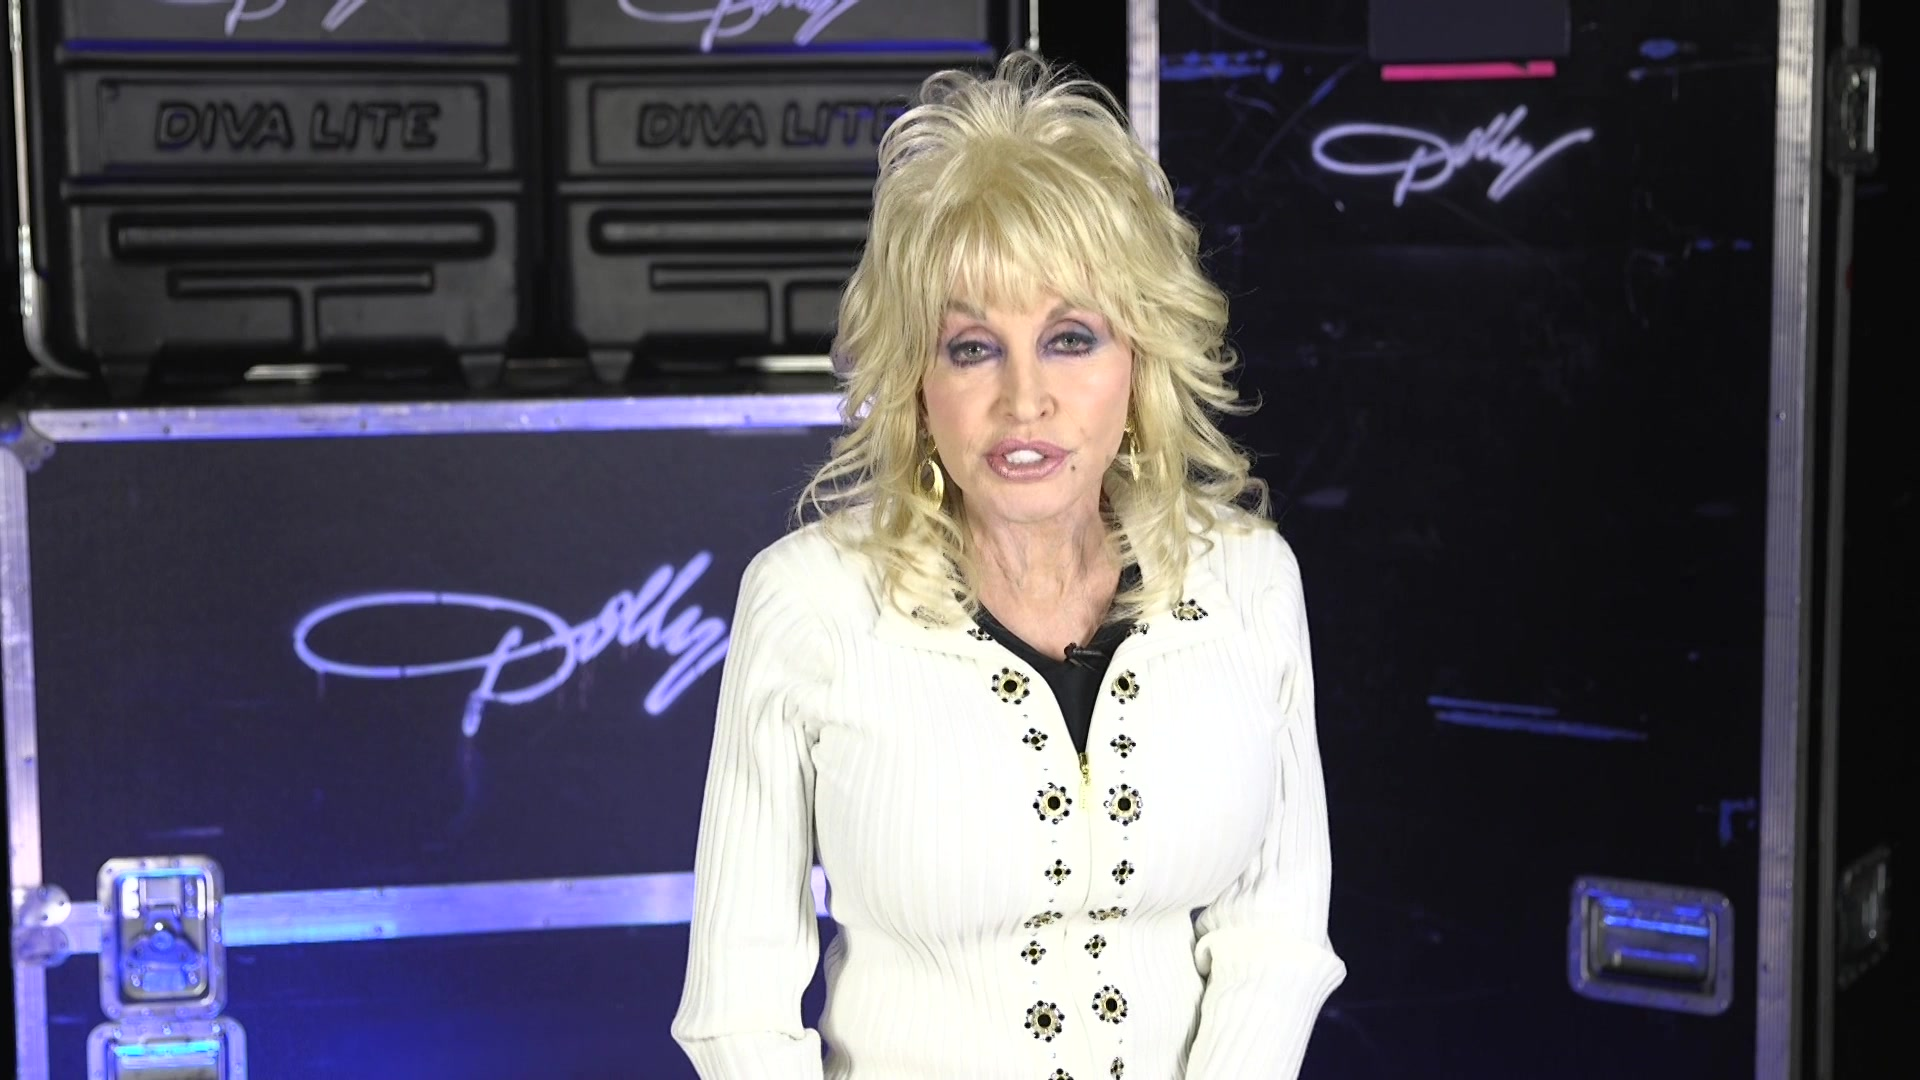 Dolly Parton dishes on new tour, costumes and music